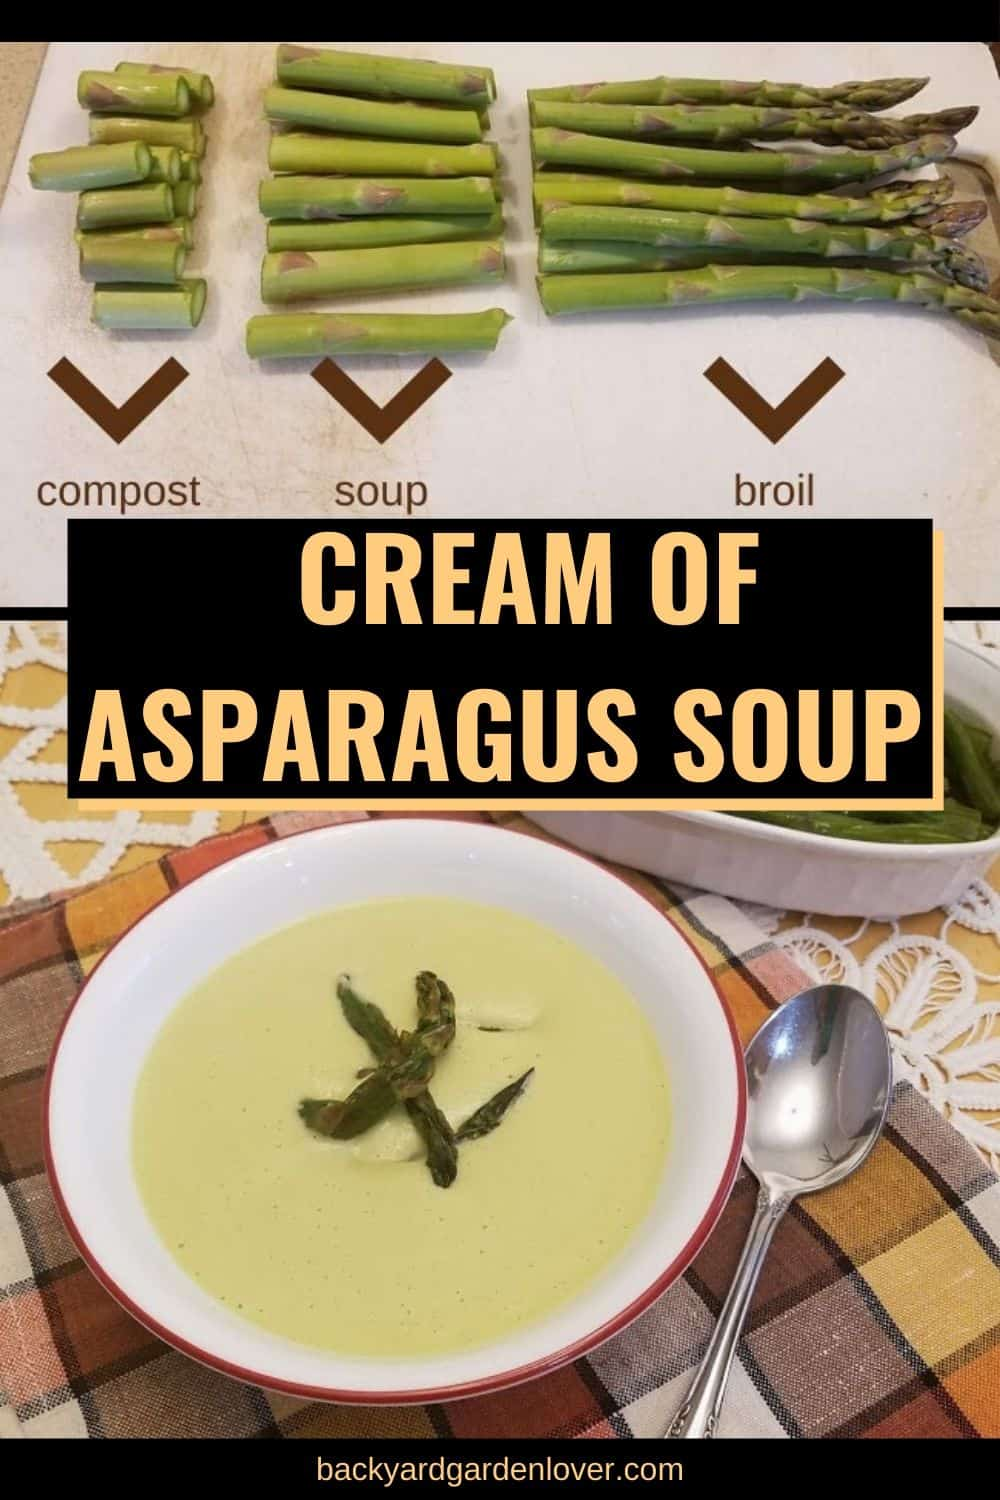 This cream of asparagus soup recipe is easy to make, healthy and pleasing to the eyes too! Your family will come back begging for more, and you'll be happy knowing it's good for them. #asparagussoup #soups #recipes #vegan #vegetarian #glutenfree #healthyrecipes #cashews #plantbased